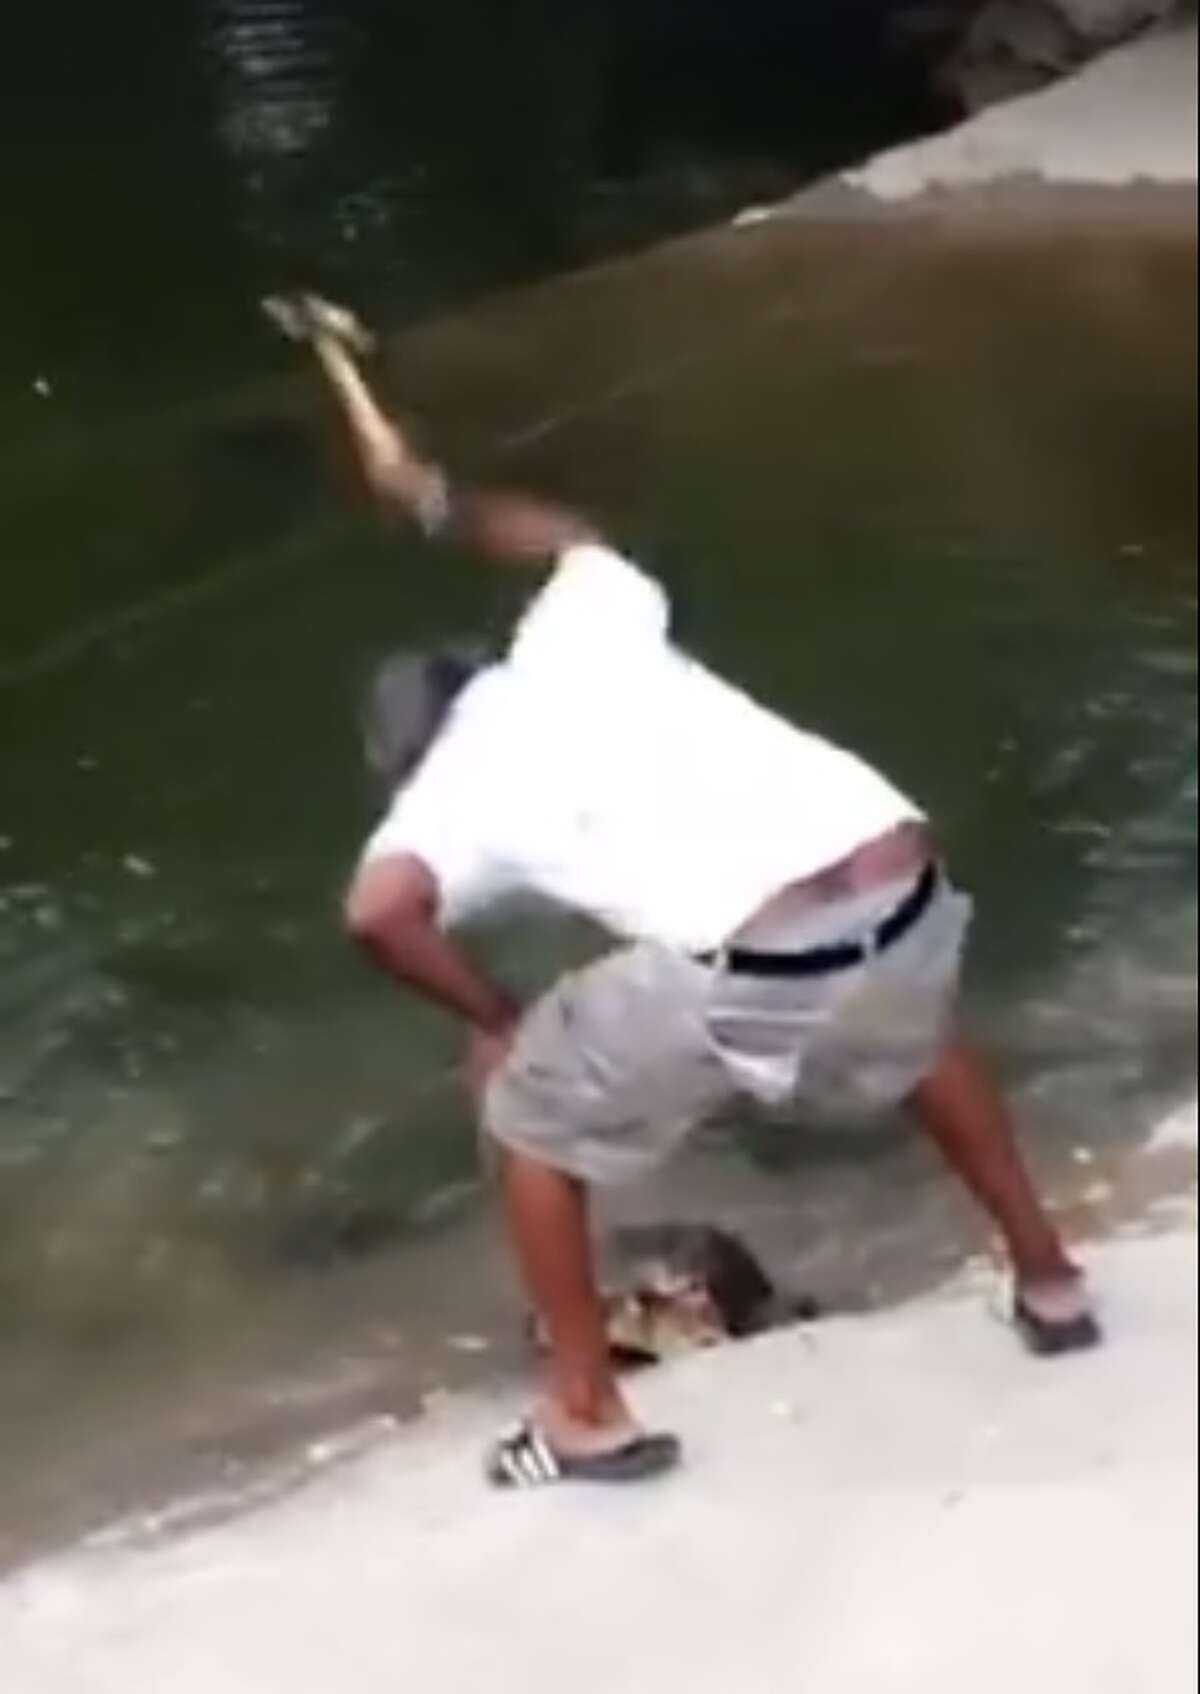 With the help of social media tips, authorities were able to track down Terry Washinhgton on June 23, 2016, who was caught on video  allegedly catching and beating a snapping turtle to death with a hammer on the banks of Lady Bird Lake in Austin.